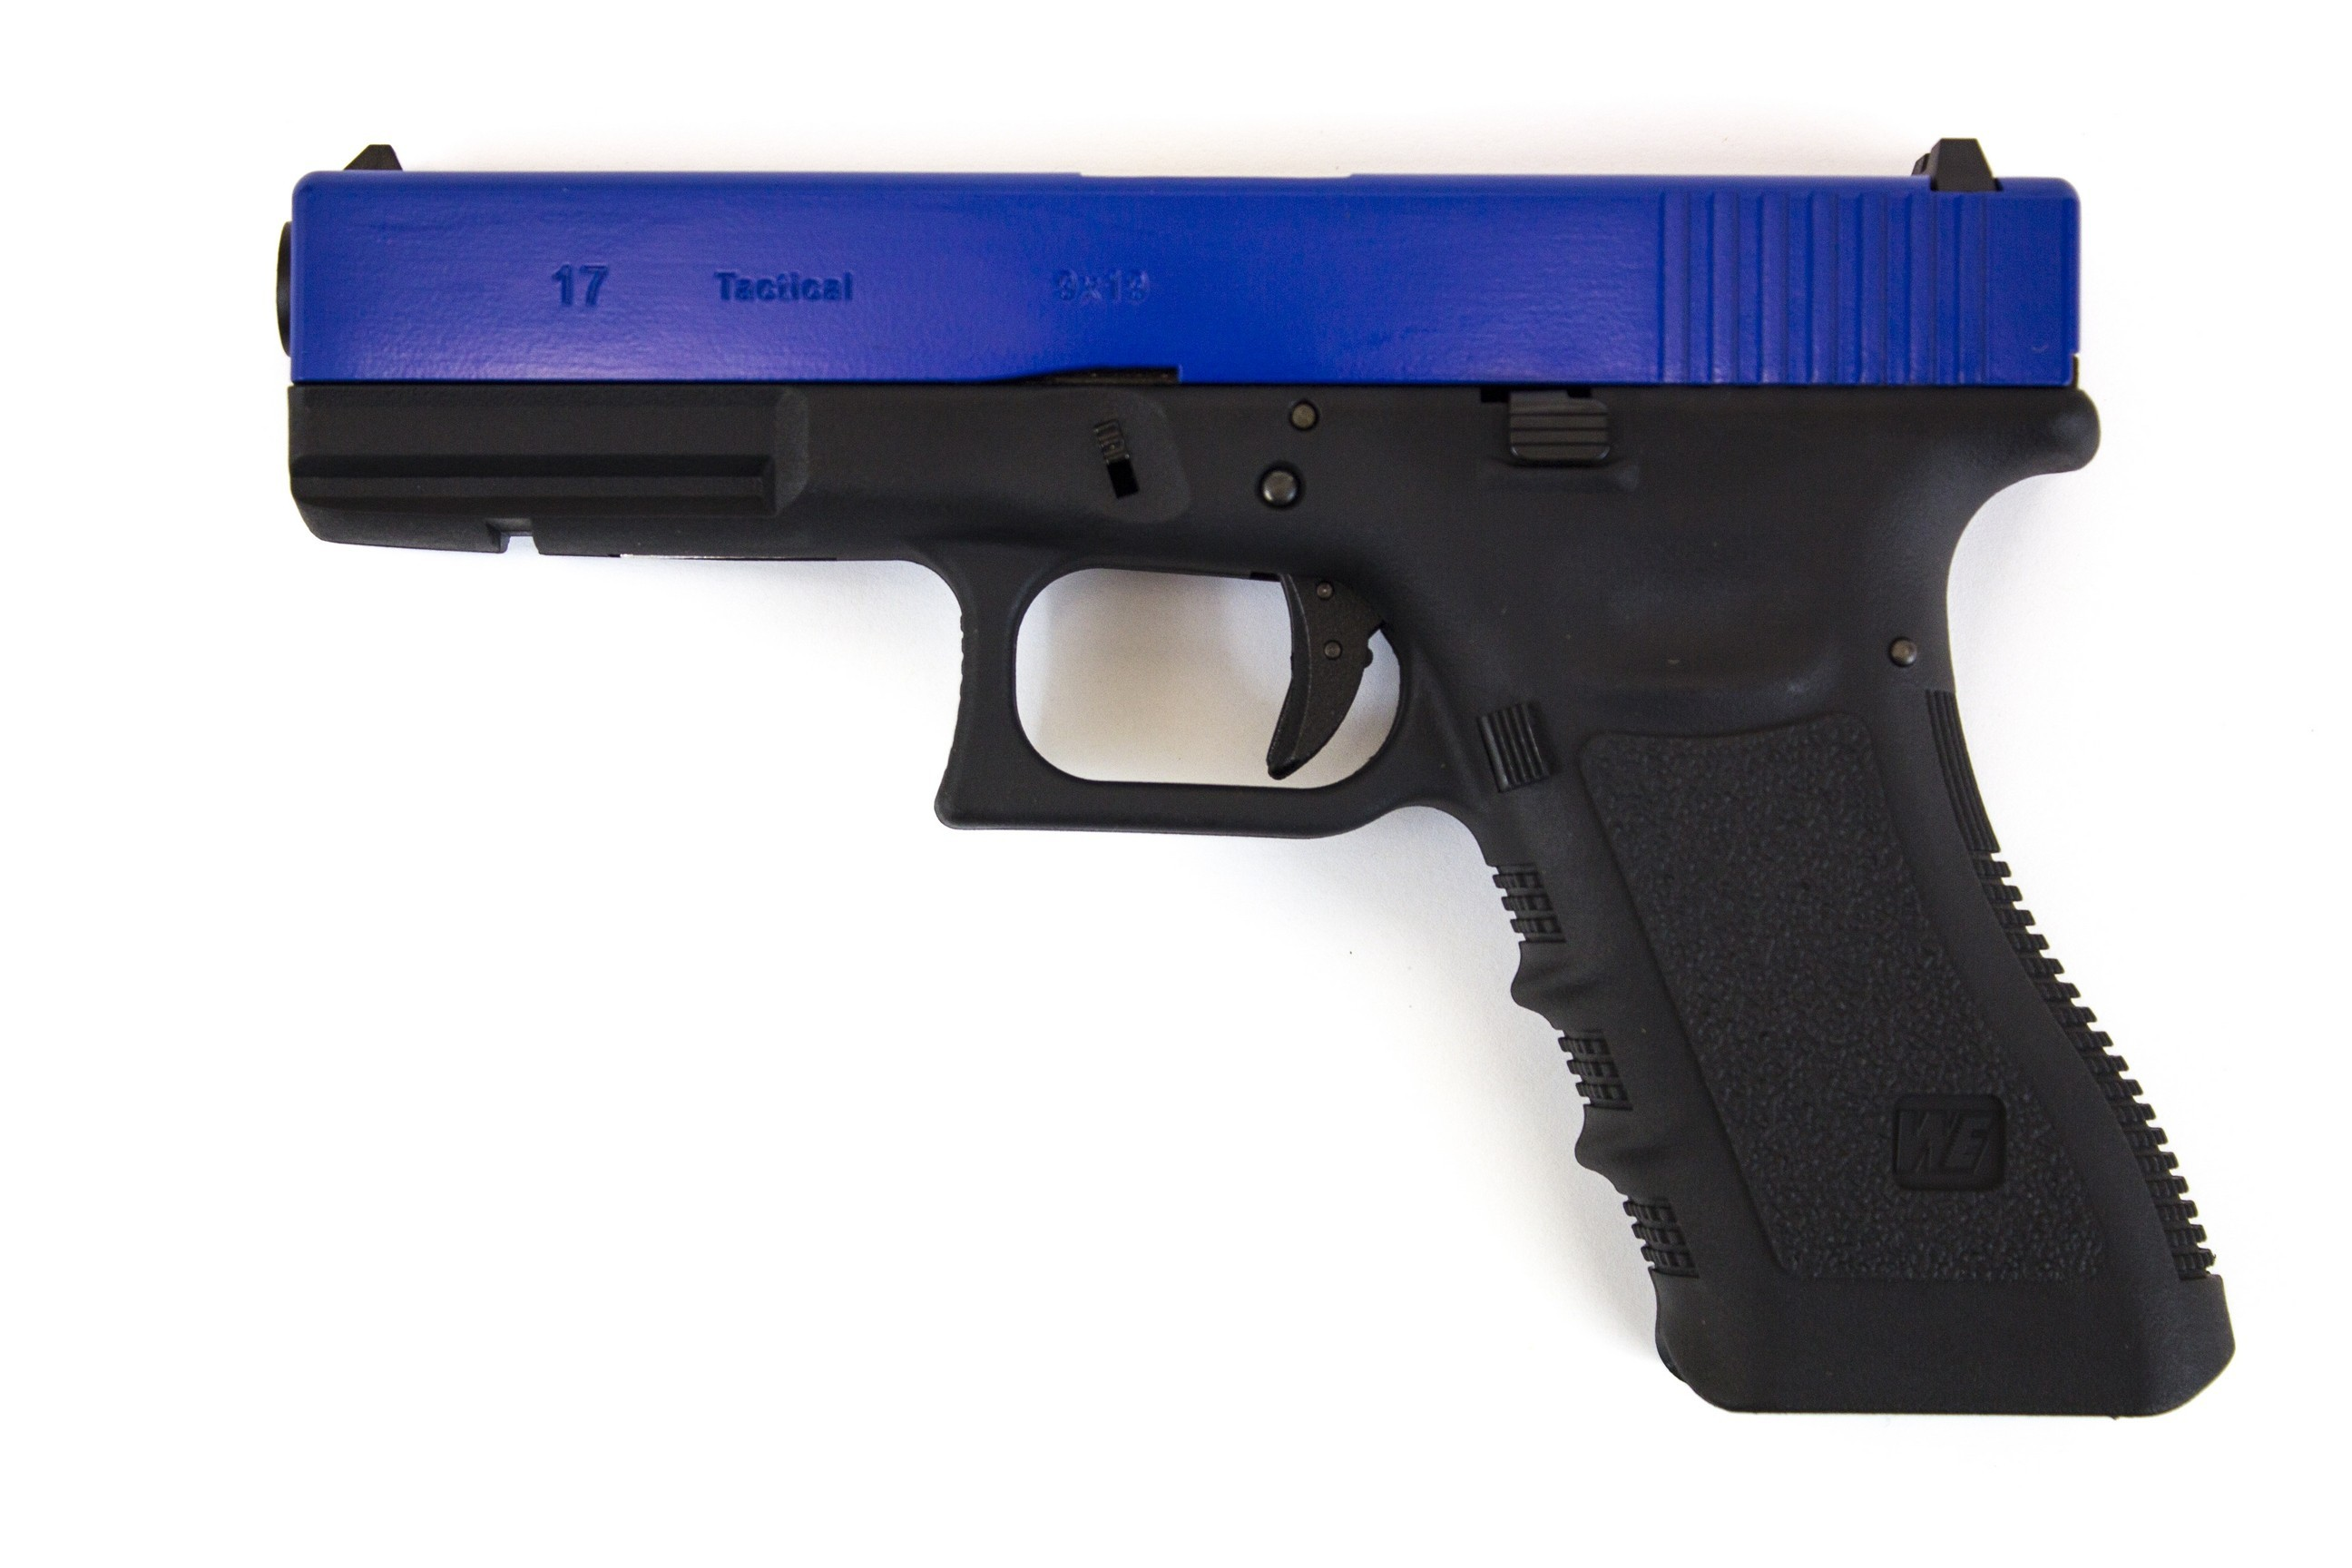 WE Glock 17 Gen 3 GBB Pistol (Blue)